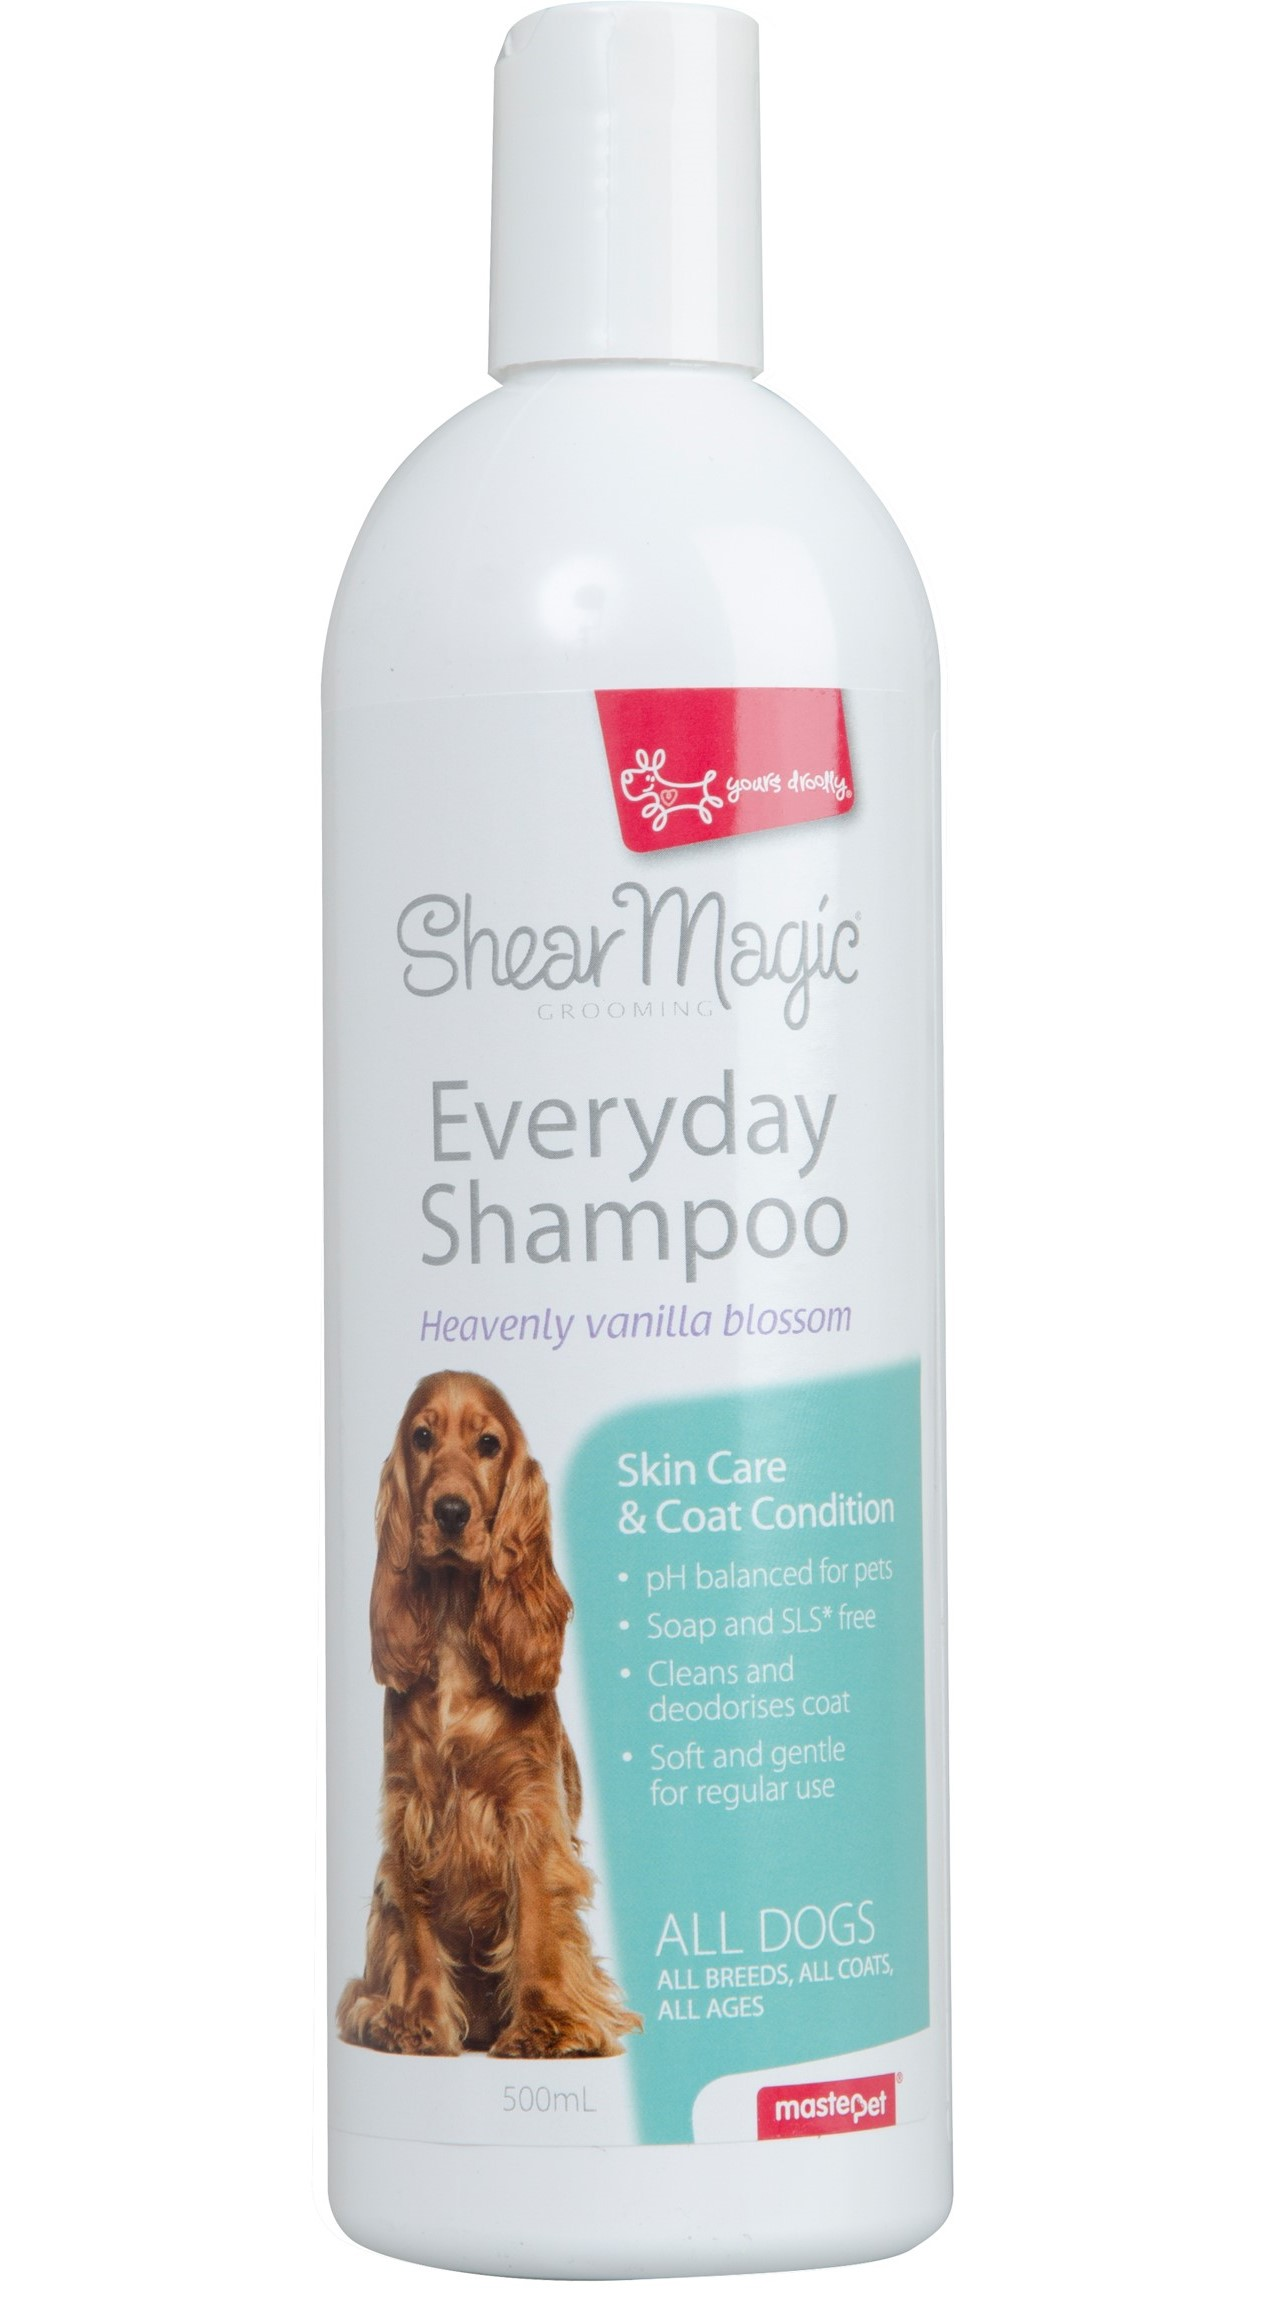 Yours Droolly Everyday Dog Shampoo - Dog-Grooming-Shampoos